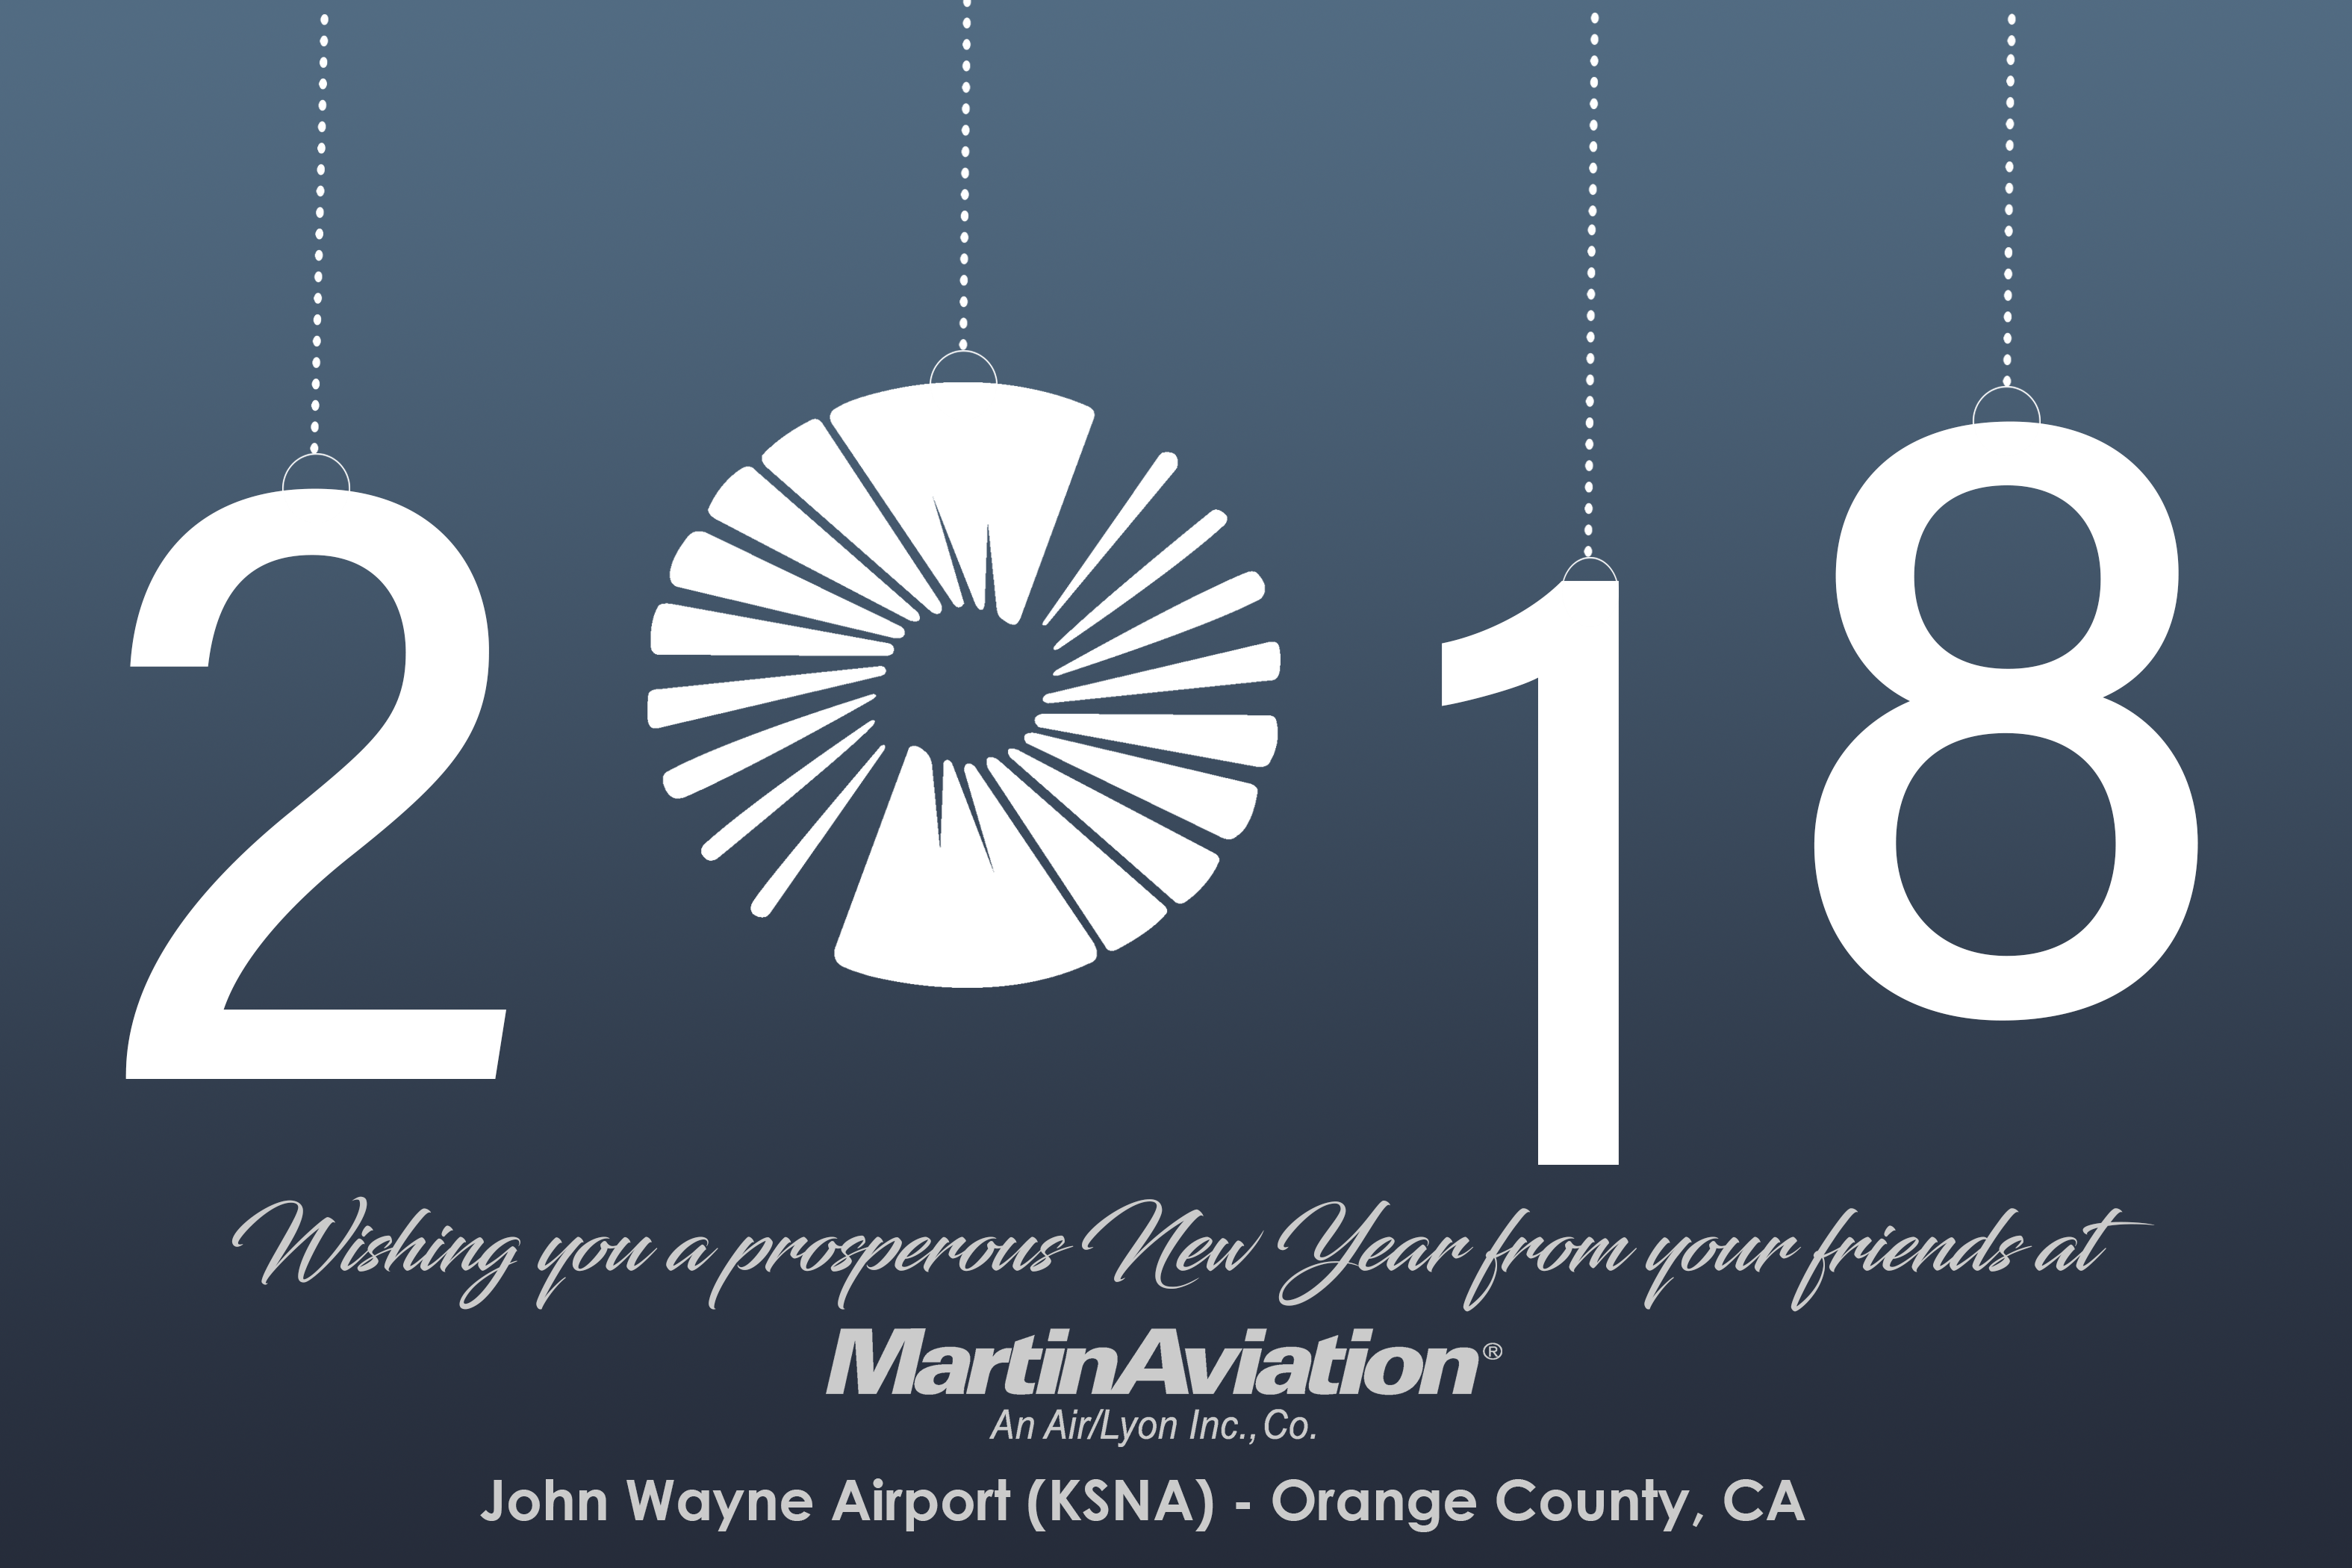 Martin Aviation Happy New Year Card 2018